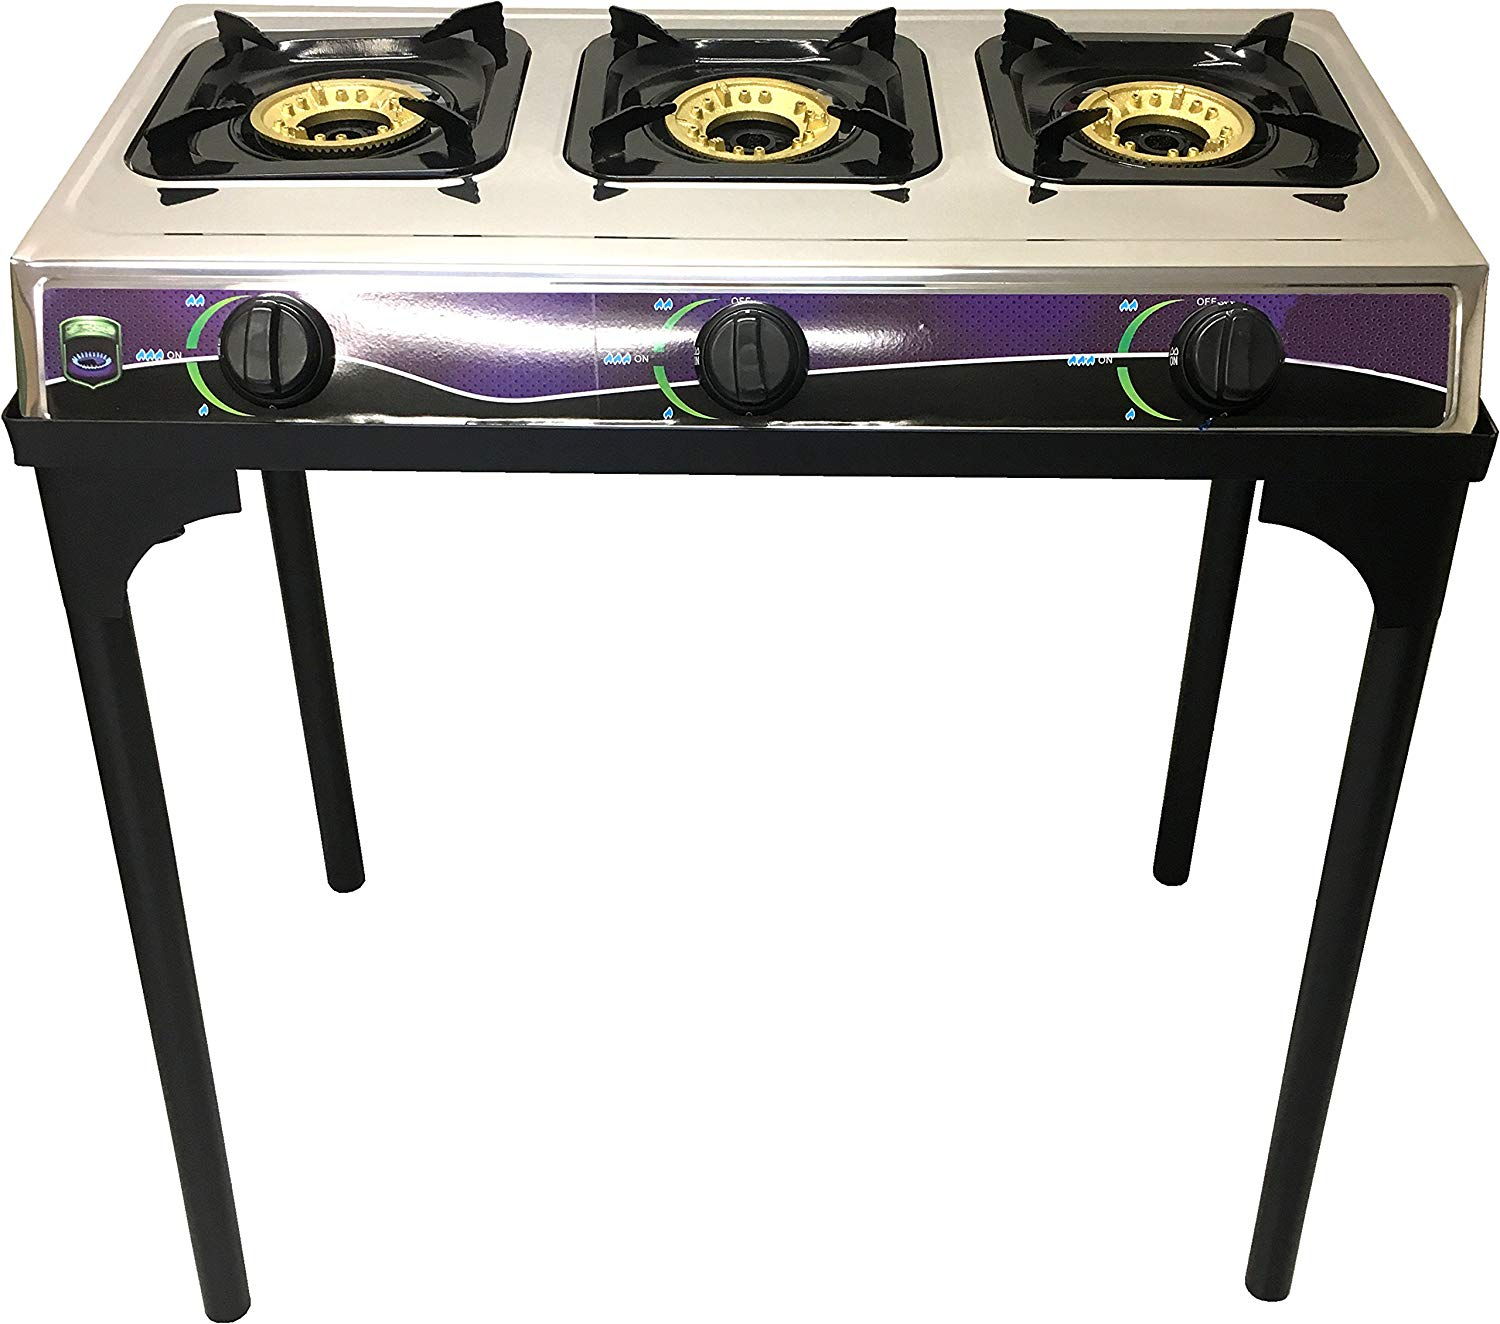 3b423ca2700 Get Quotations ·  1 Heavy Duty Three Burner Propane Gas Stove Outdoor  Cooking Butane Gas Stove Full Stainless